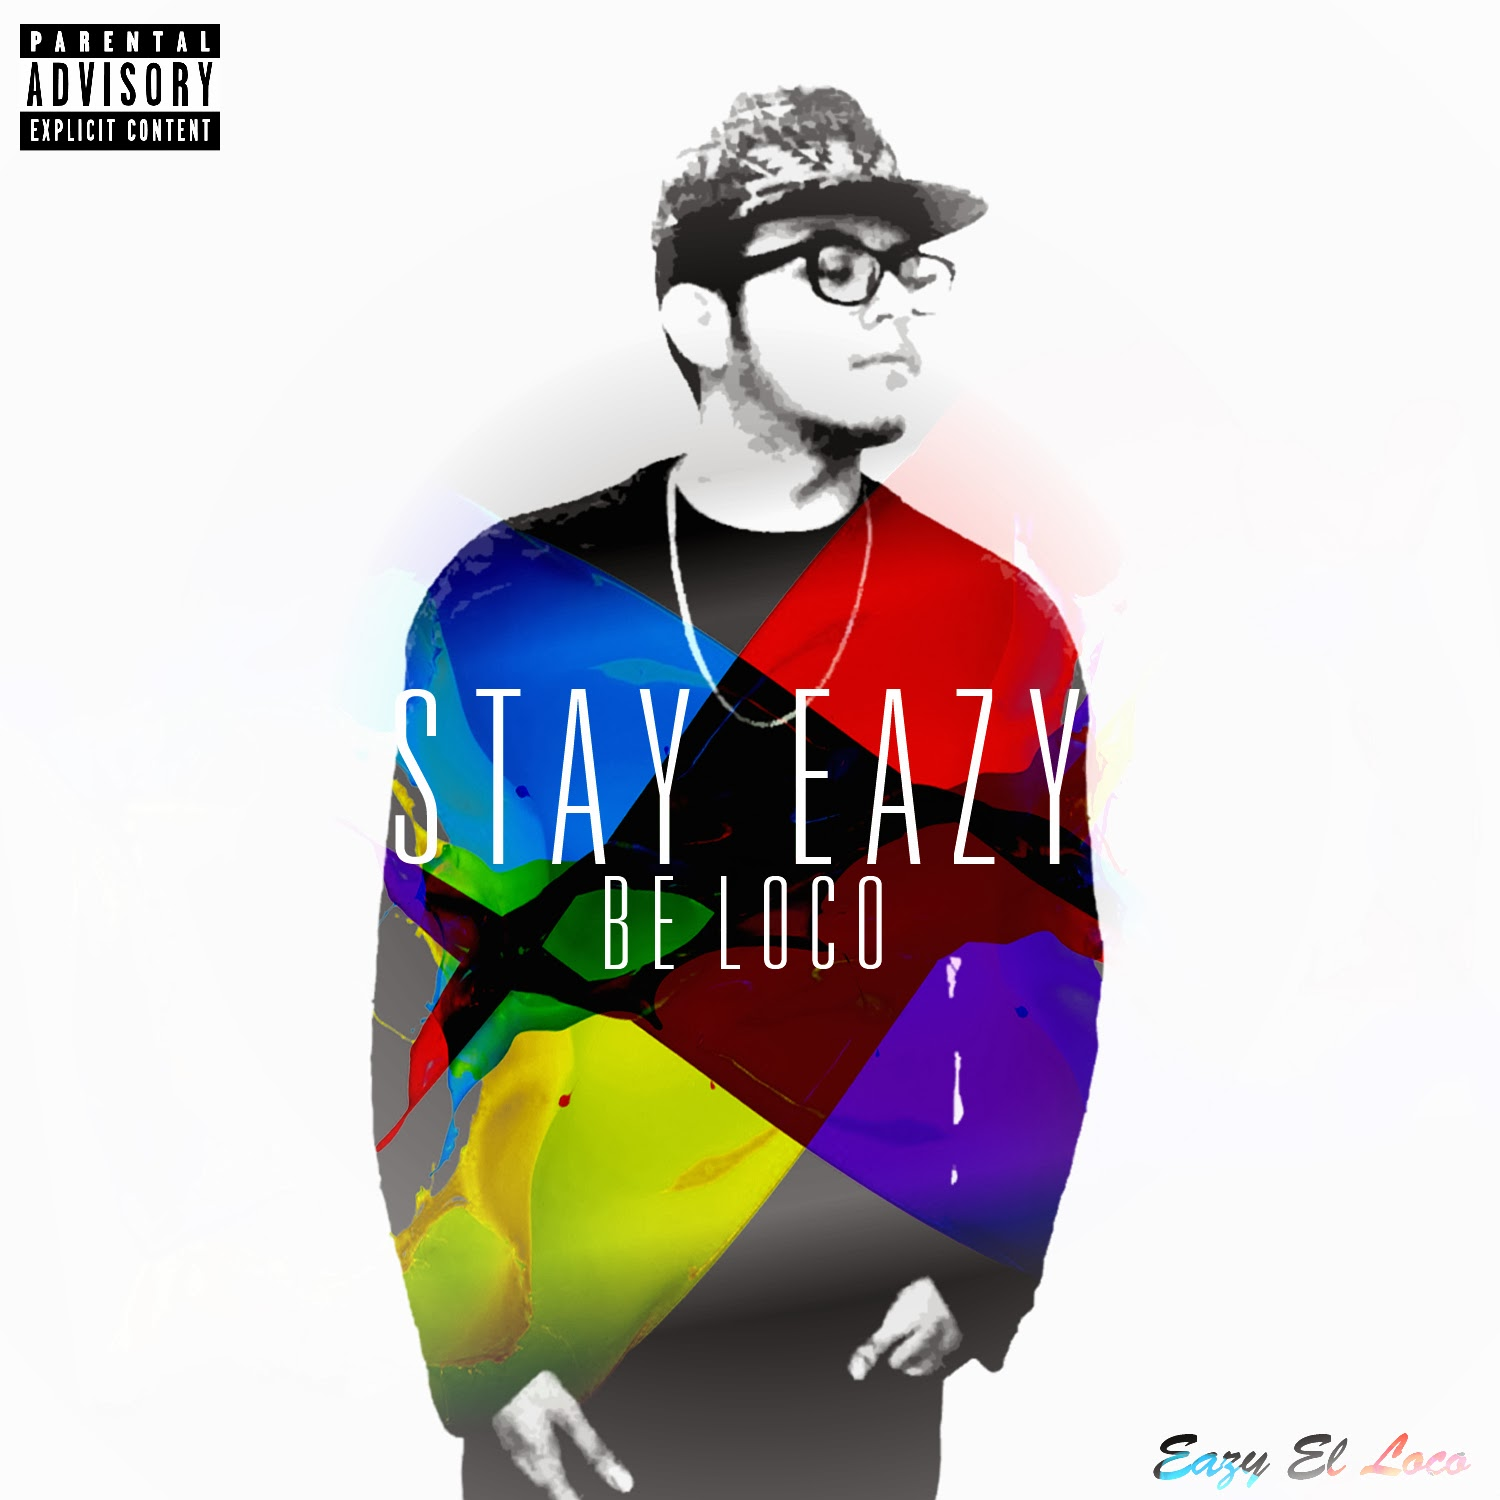 http://eazyelloco.bigcartel.com/product/stay-eazy-be-loco-limited-edition-cd